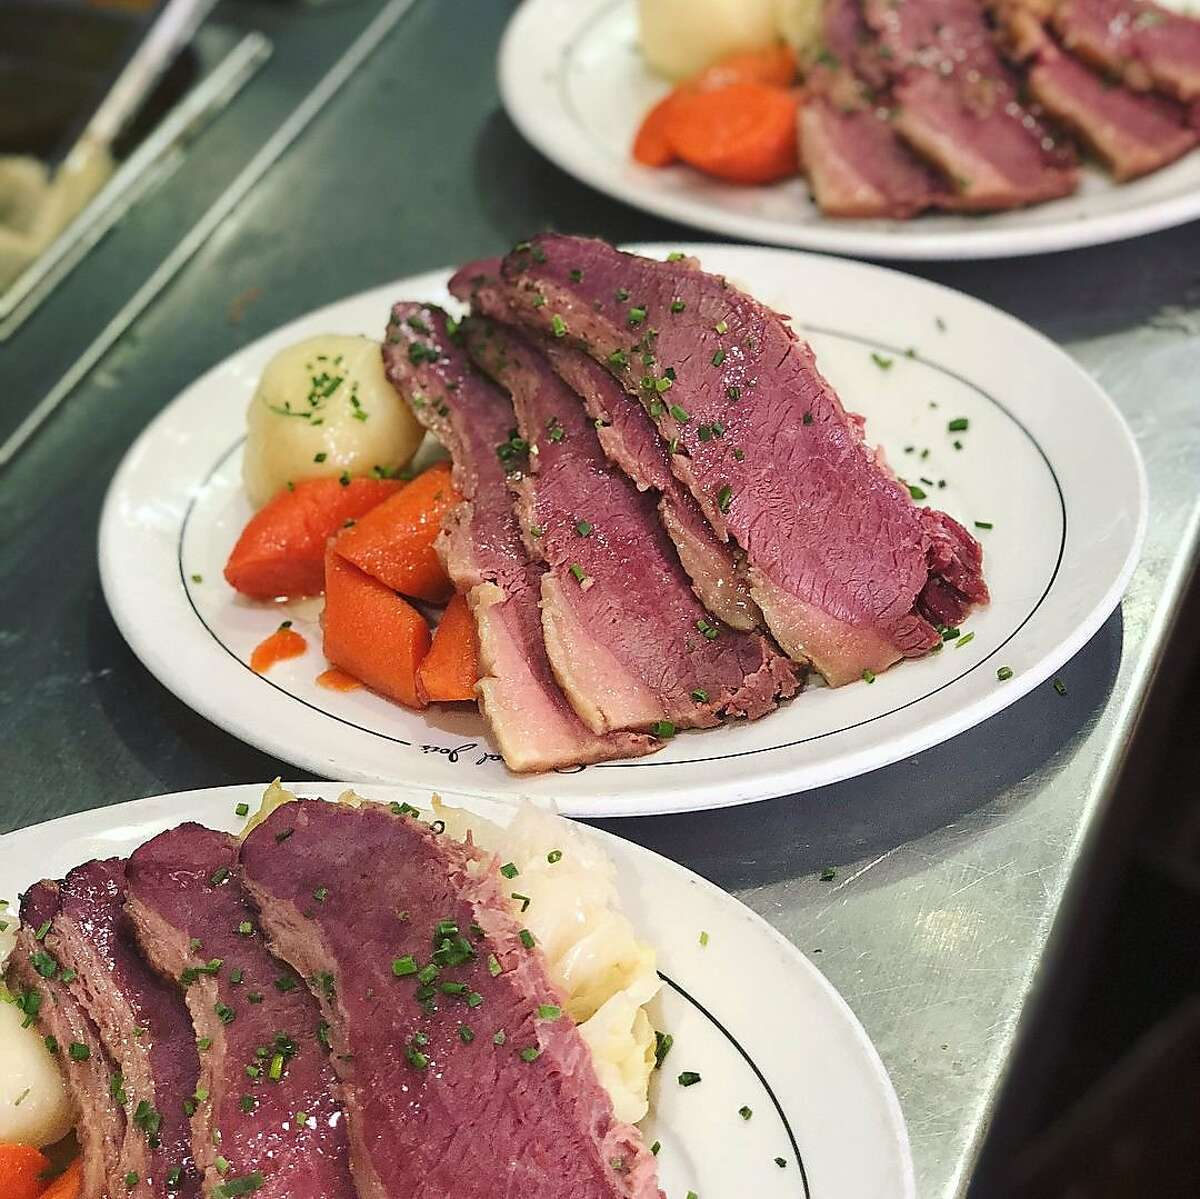 Corned beef and cabbage is the St. Patrick's Day special from San Francisco restaurant Original Joe's.